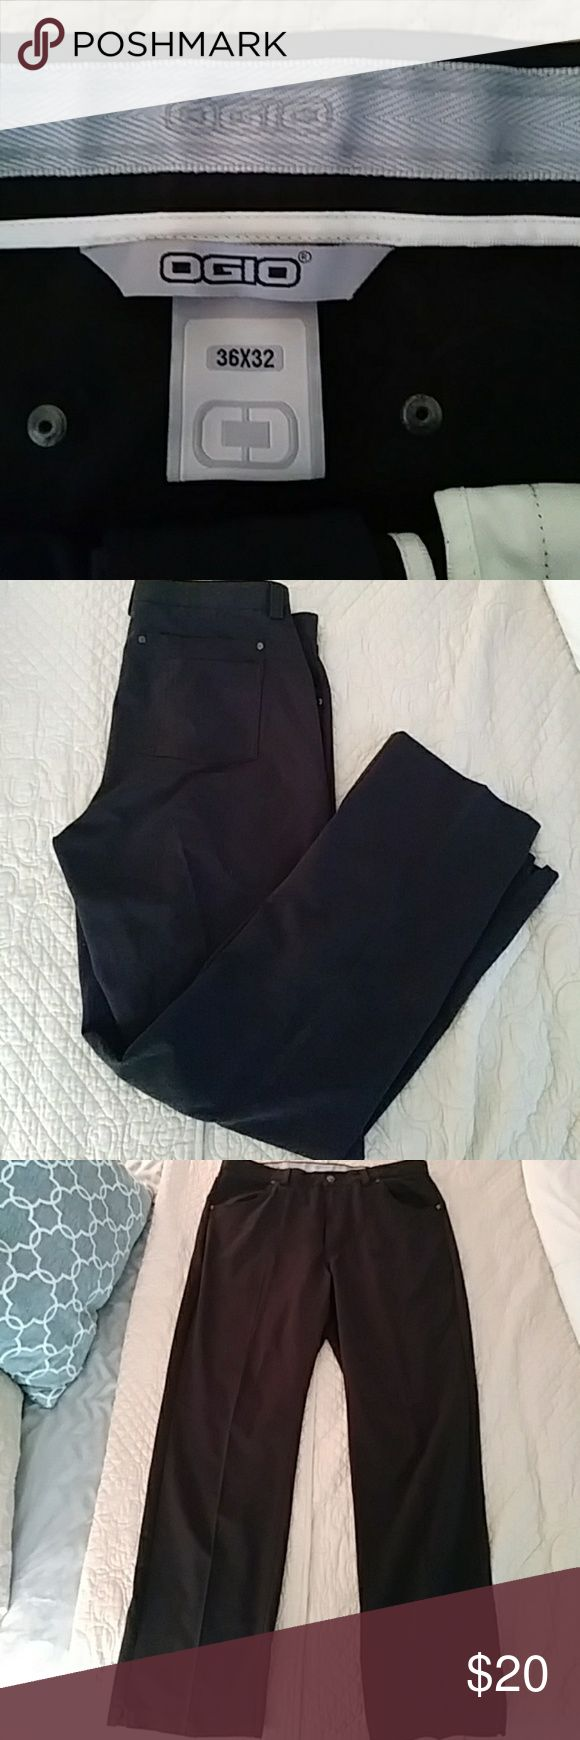 Mens Ogio golf pants sz 36×32 Great pair of Mens Ogio golf pants with no slip waist band in a size 36×32. These pants are an excellent like new condition, worn one time, see pics for additional measurements. Ogio Pants Dress